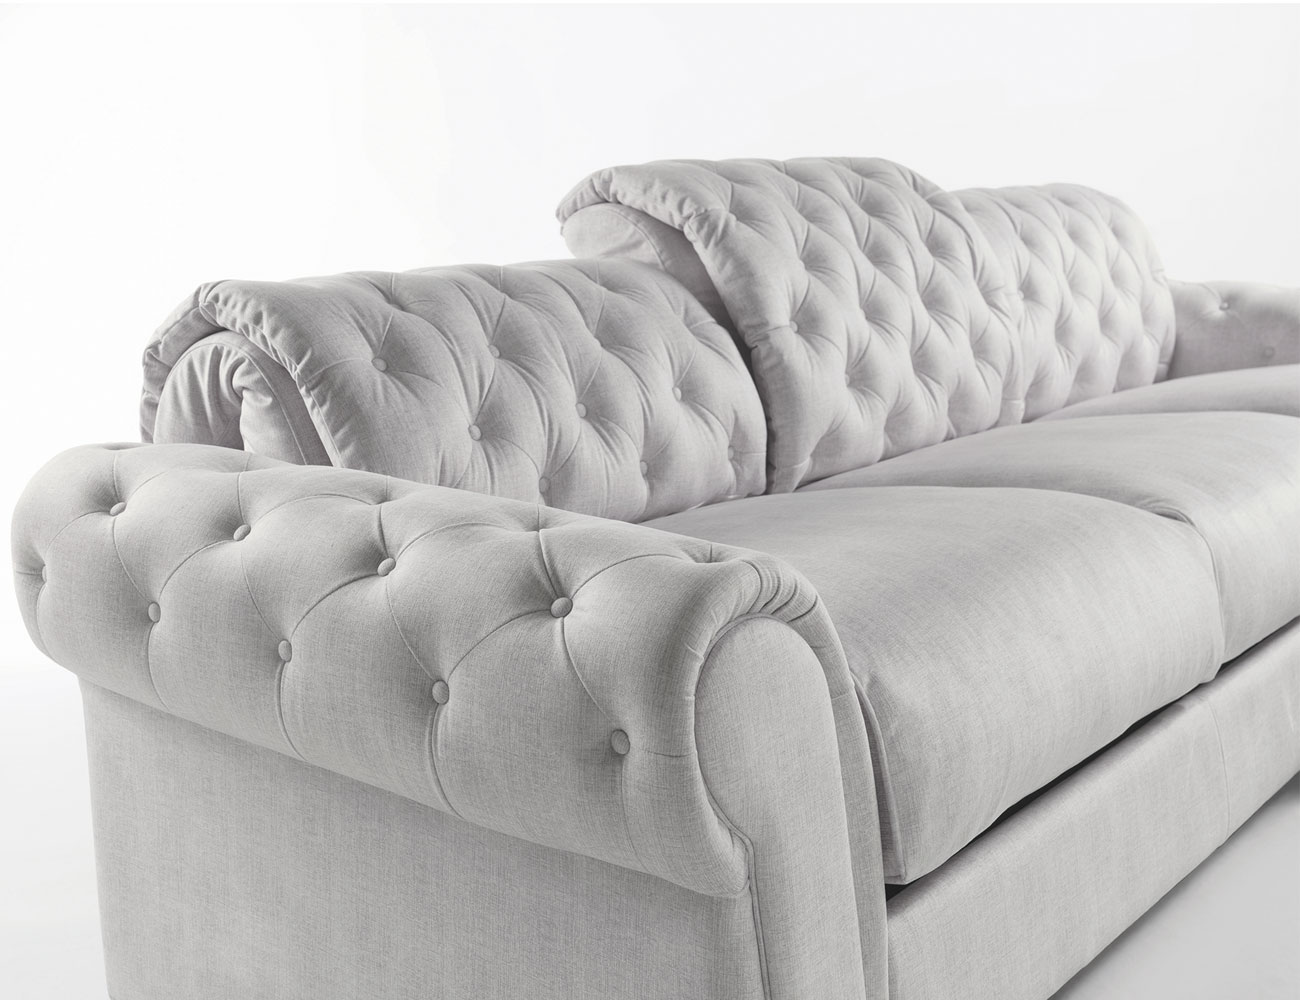 Sofa chaiselongue gran lujo decorativo capitone blanco tela 127